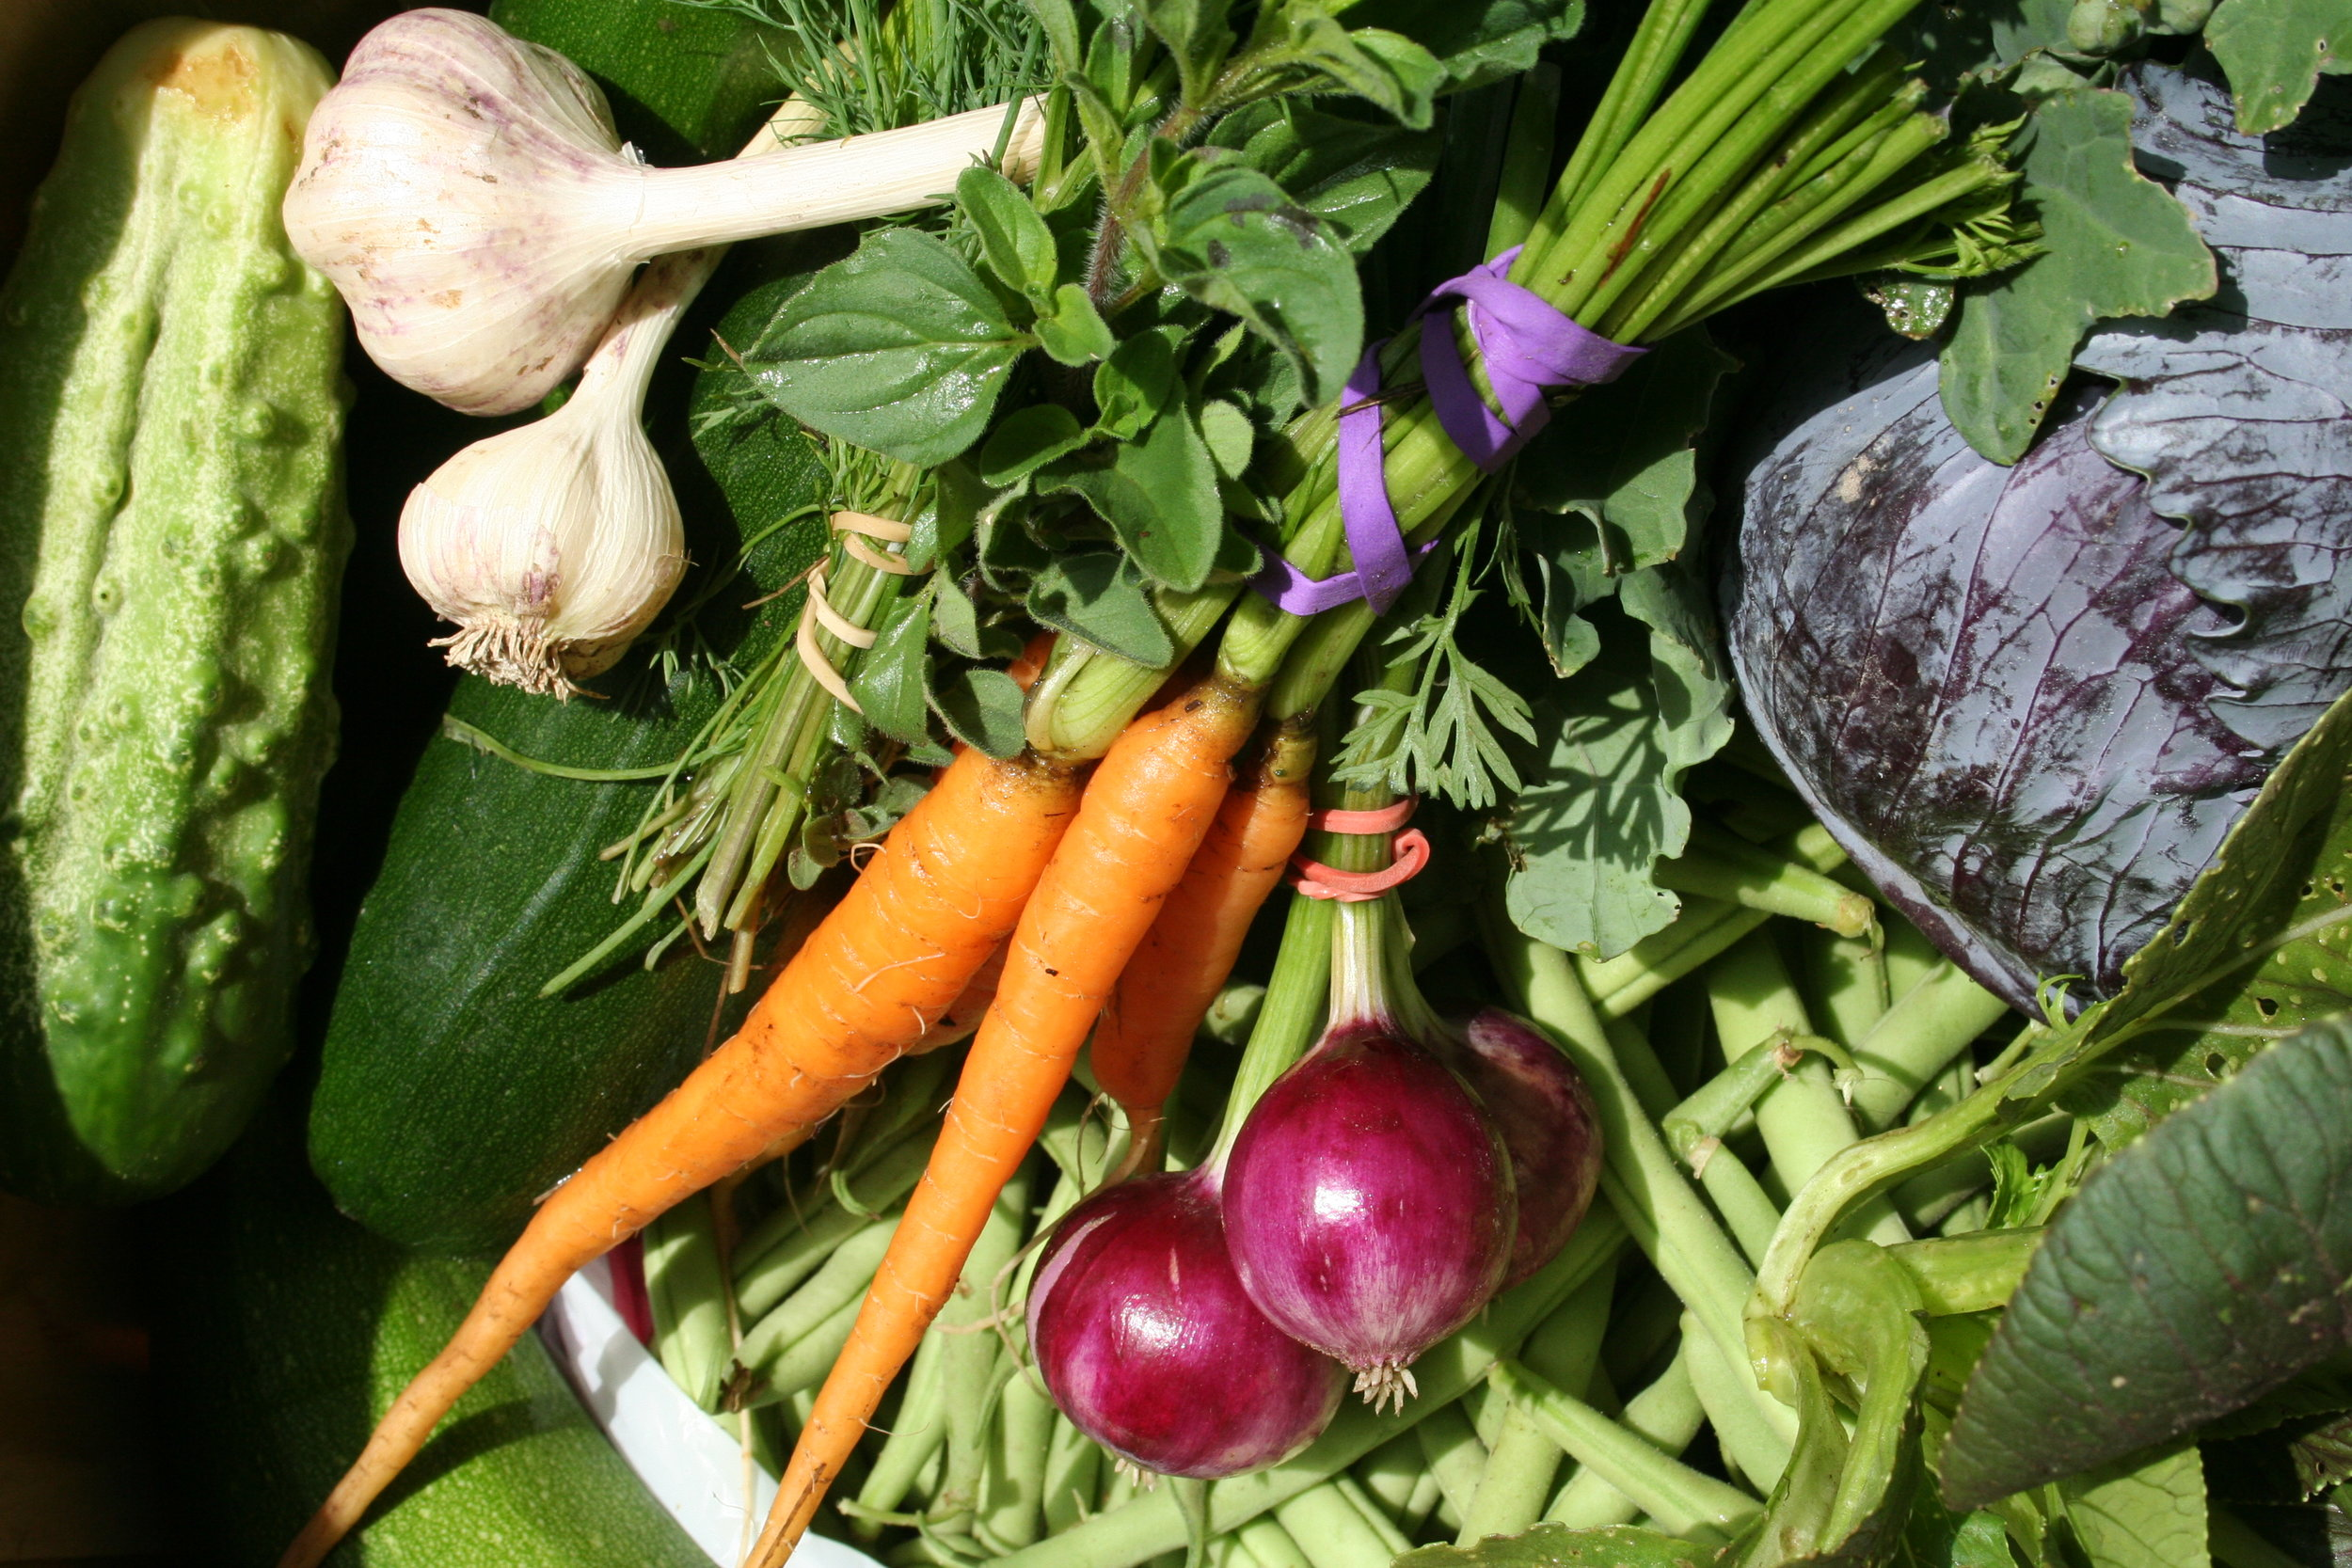 An early July 2014 basket from Riverbow Farm, Louise's CSA farm in Canton